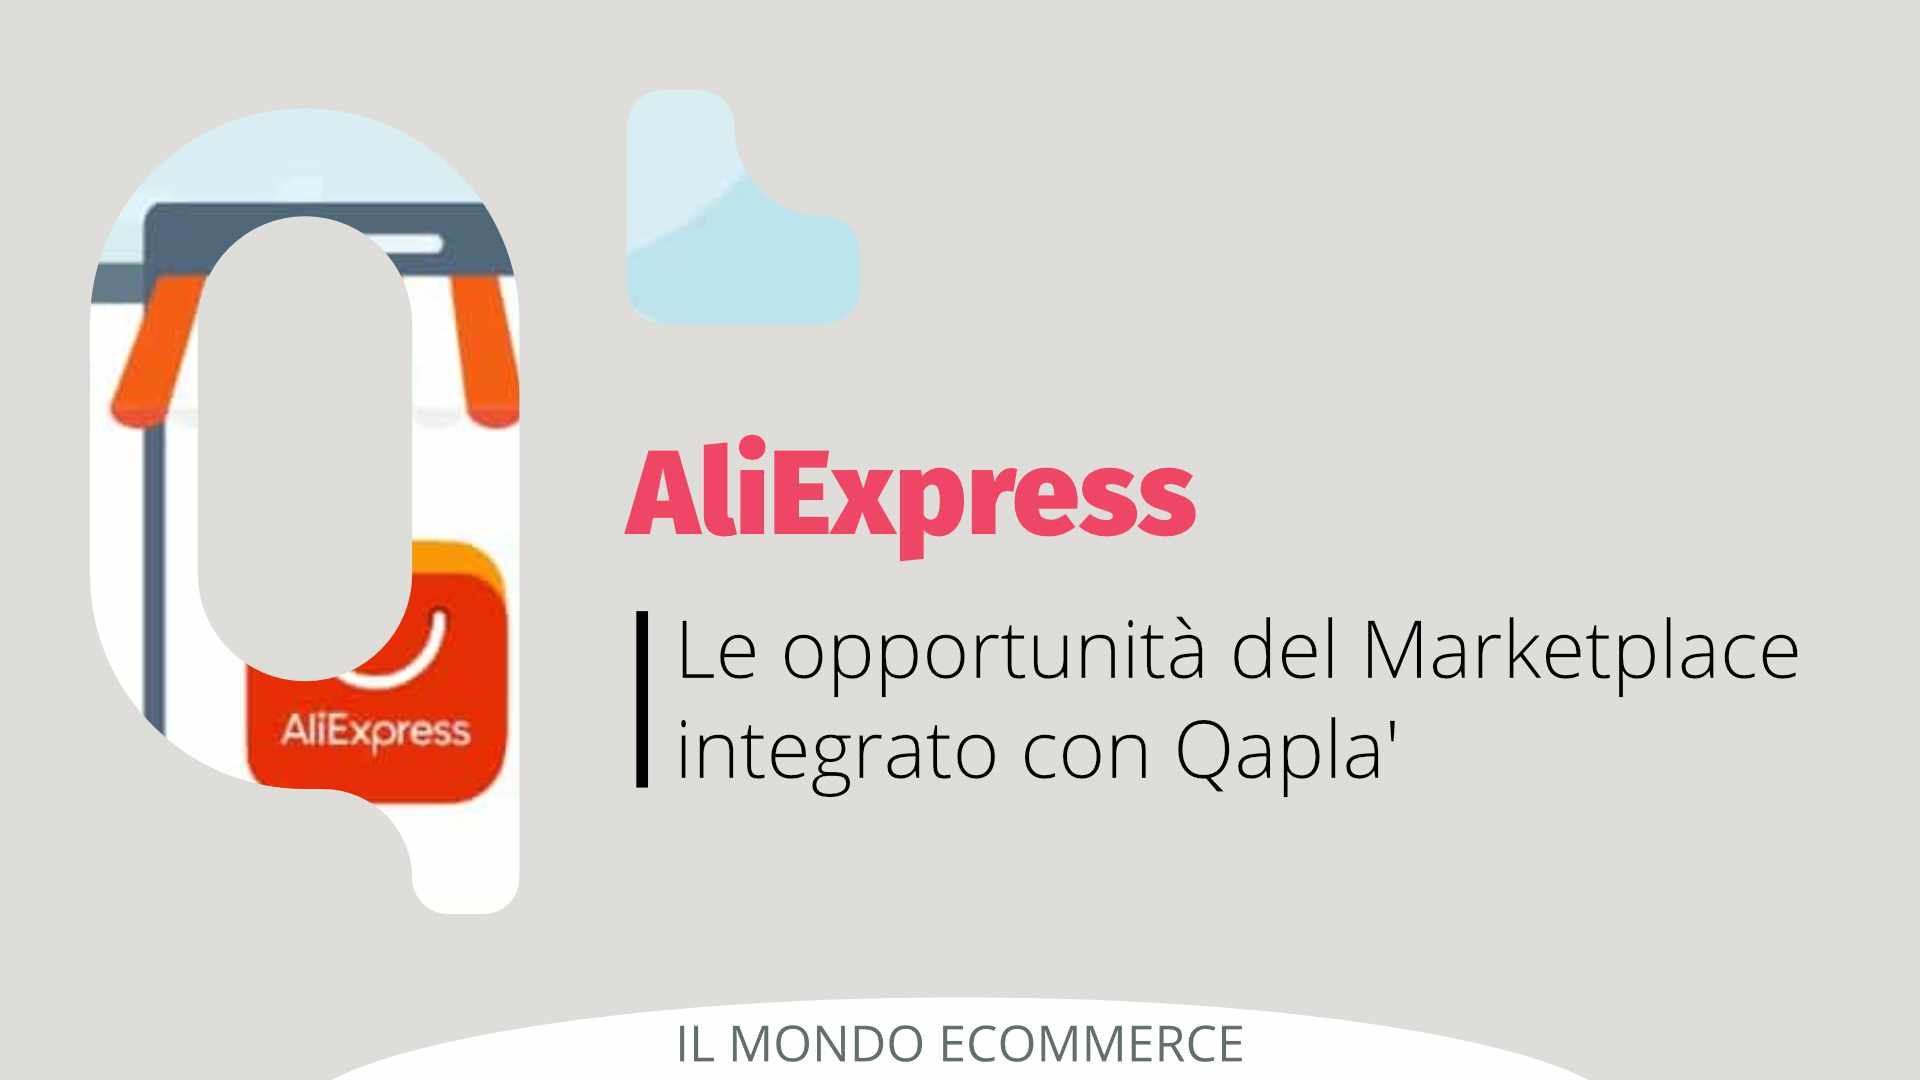 AliExpress: le opportunità del Marketplace integrato con Qapla'